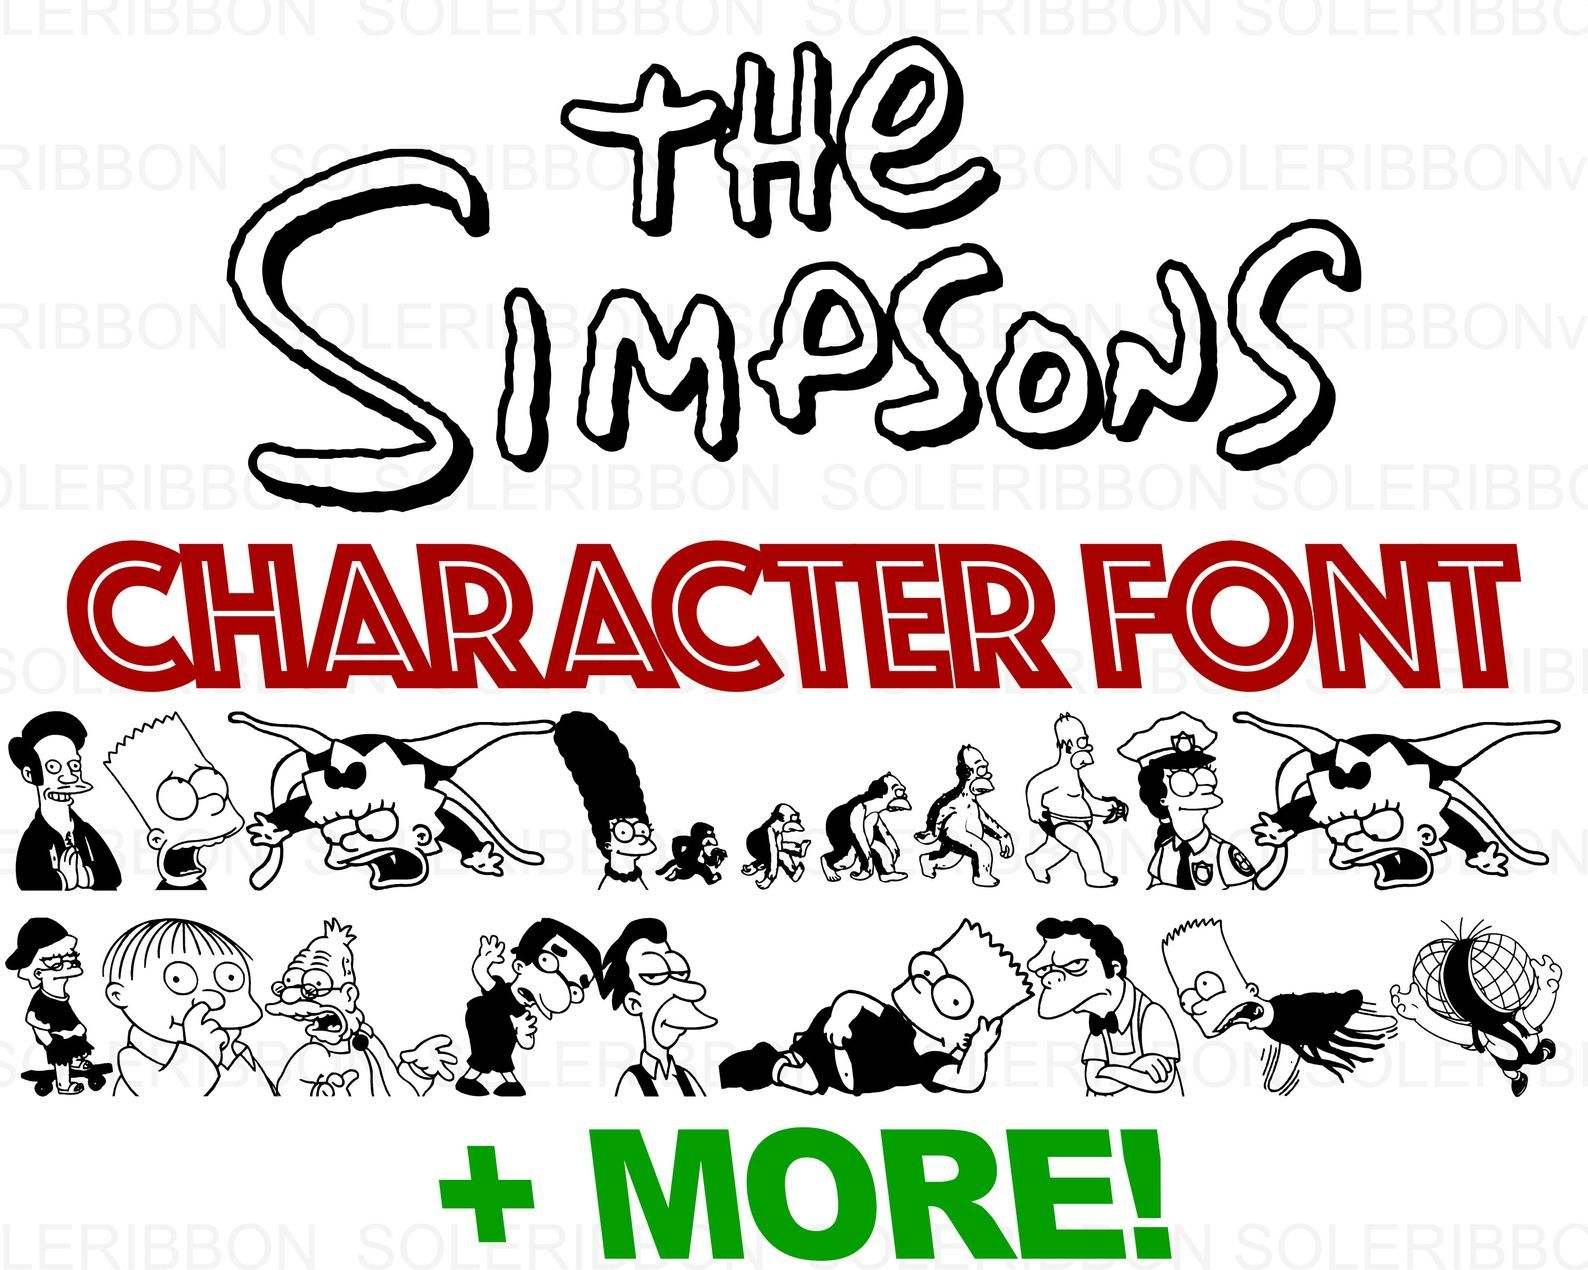 The Simpsons Character Font Simpsons SVG, The Simpsons